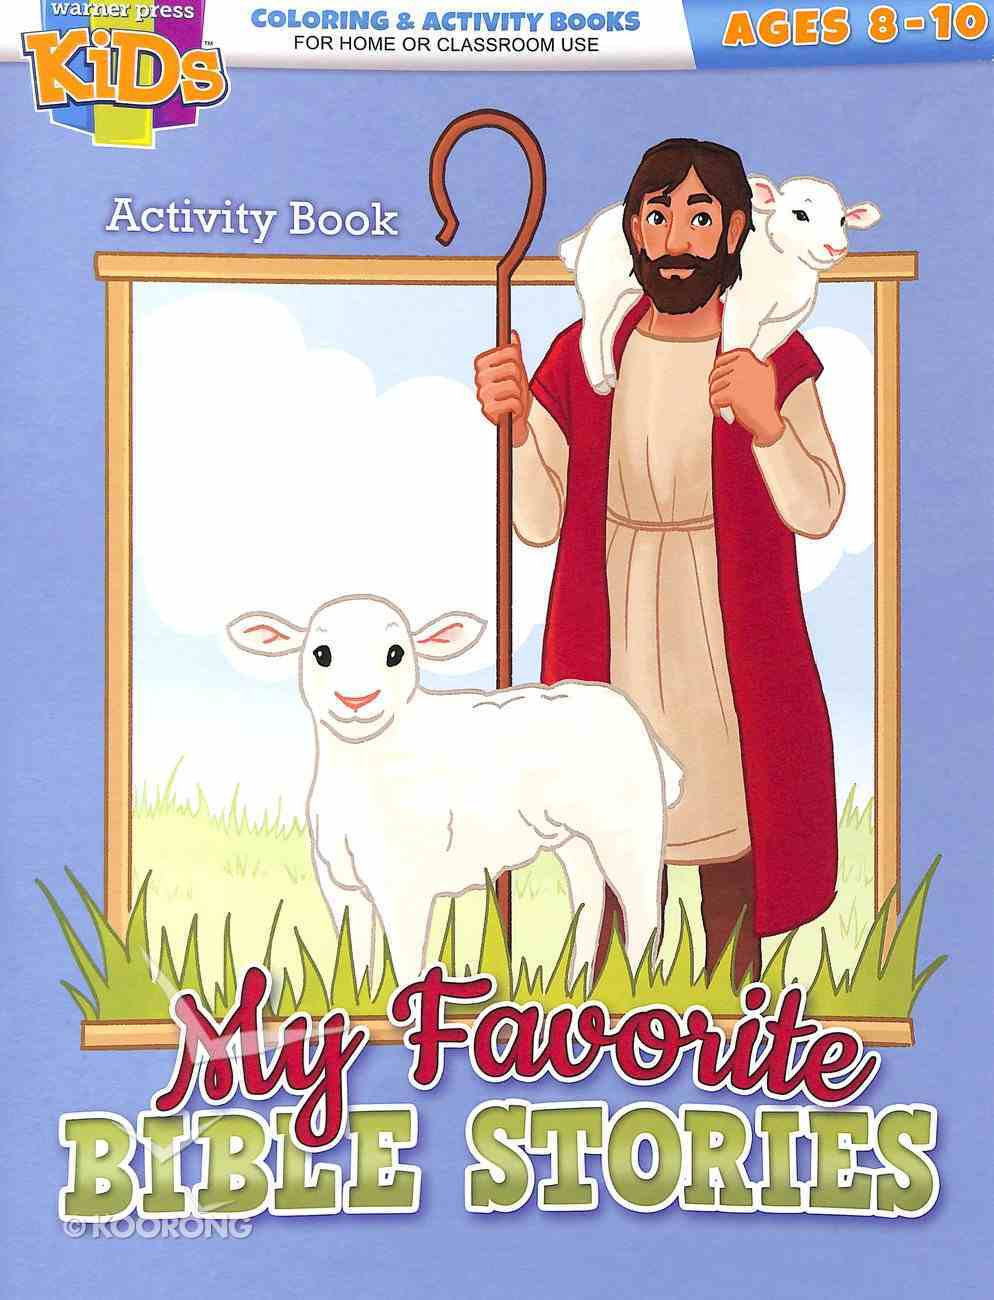 My Favorite Bible Stories (Ages 8-10 Reproducible) (Warner Press Colouring & Activity Books Series) Paperback